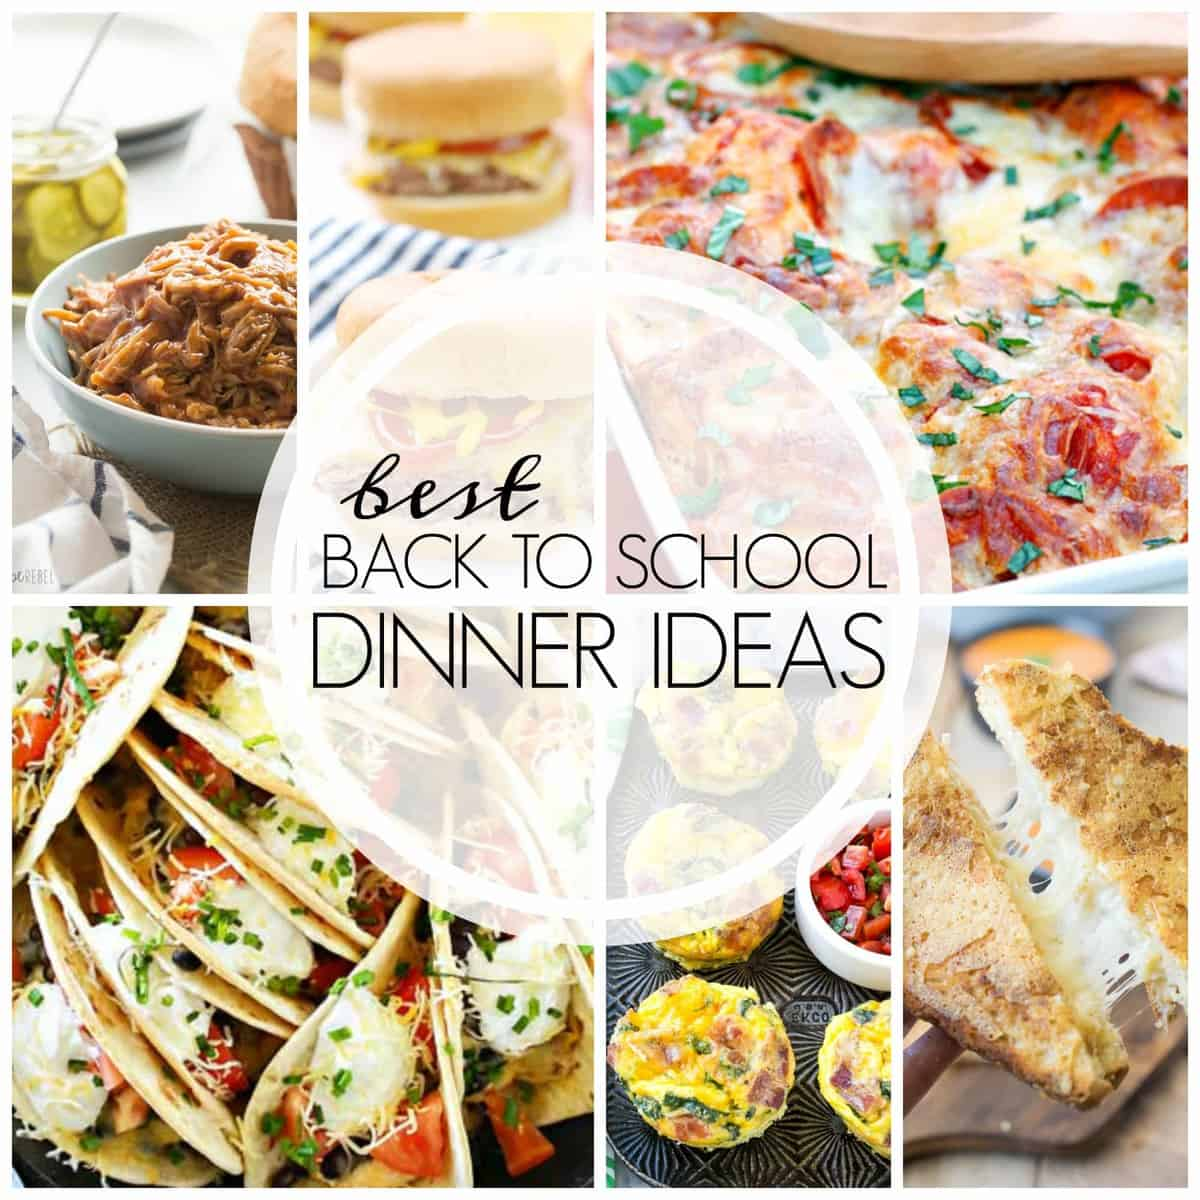 Easy Dinner Recipes 20 Family Friendly Ideas Self Proclaimed Foodie